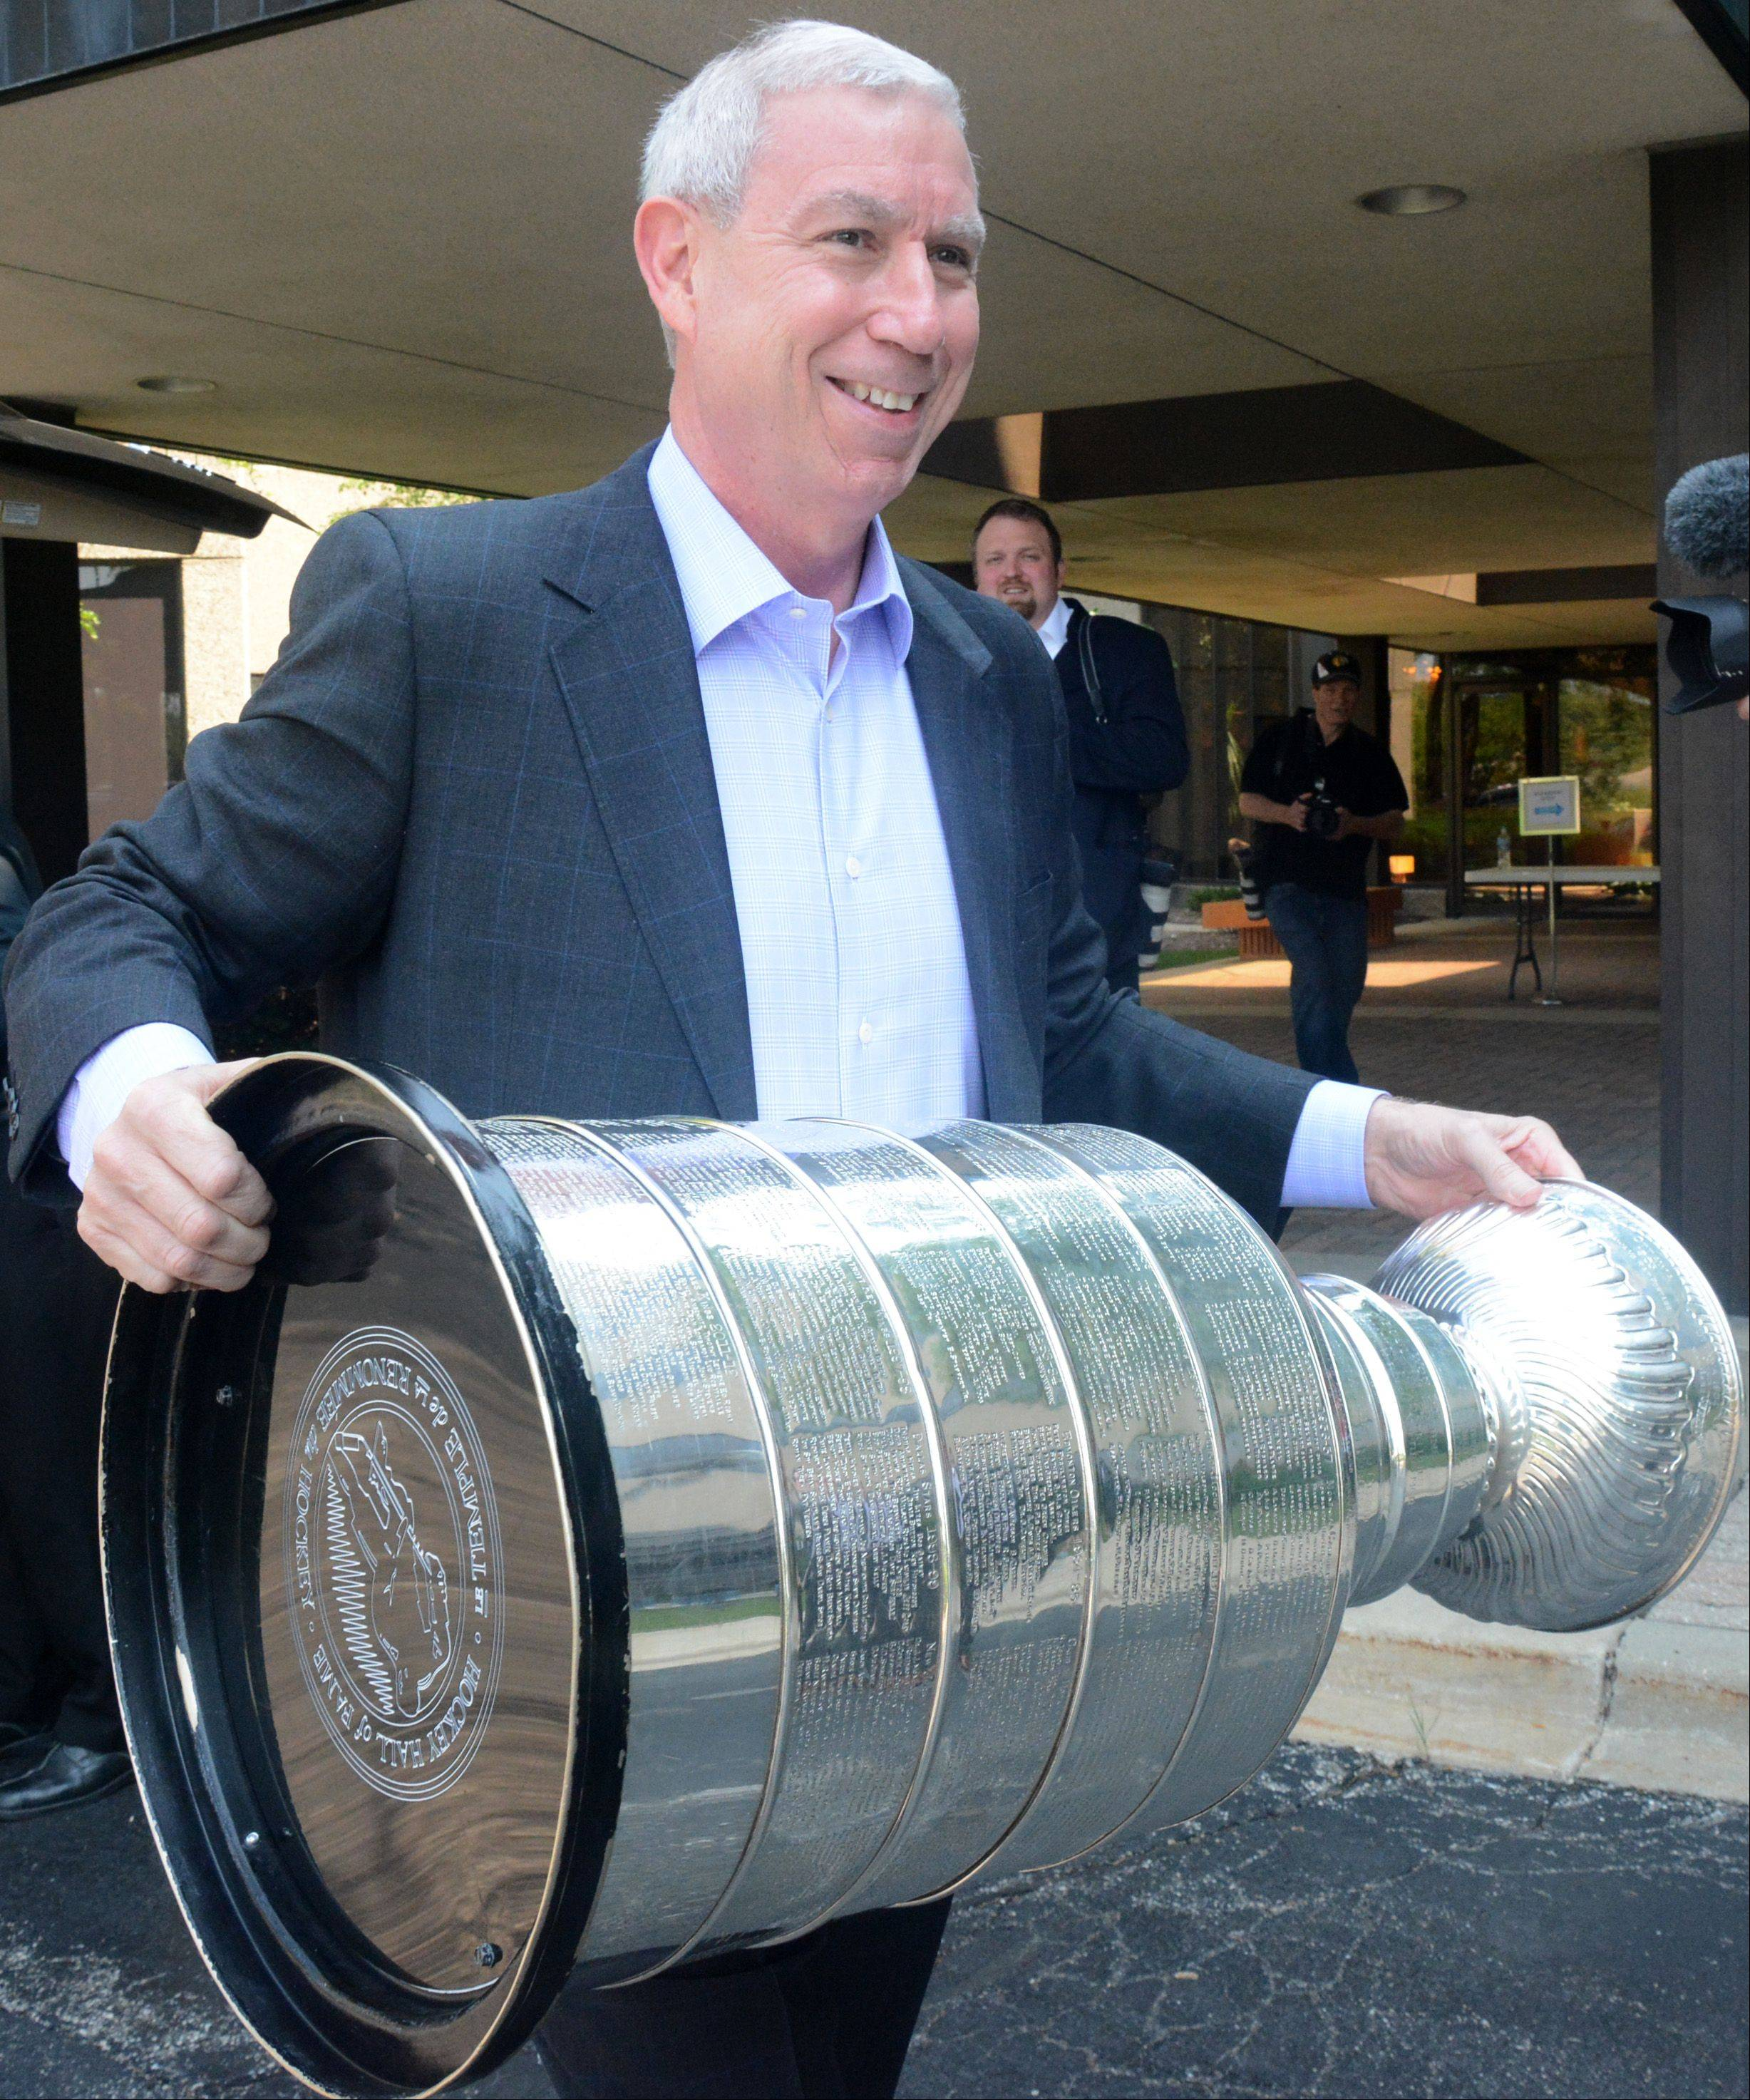 Fans cup runneth over as Lord Stanley comes to Daily Herald office